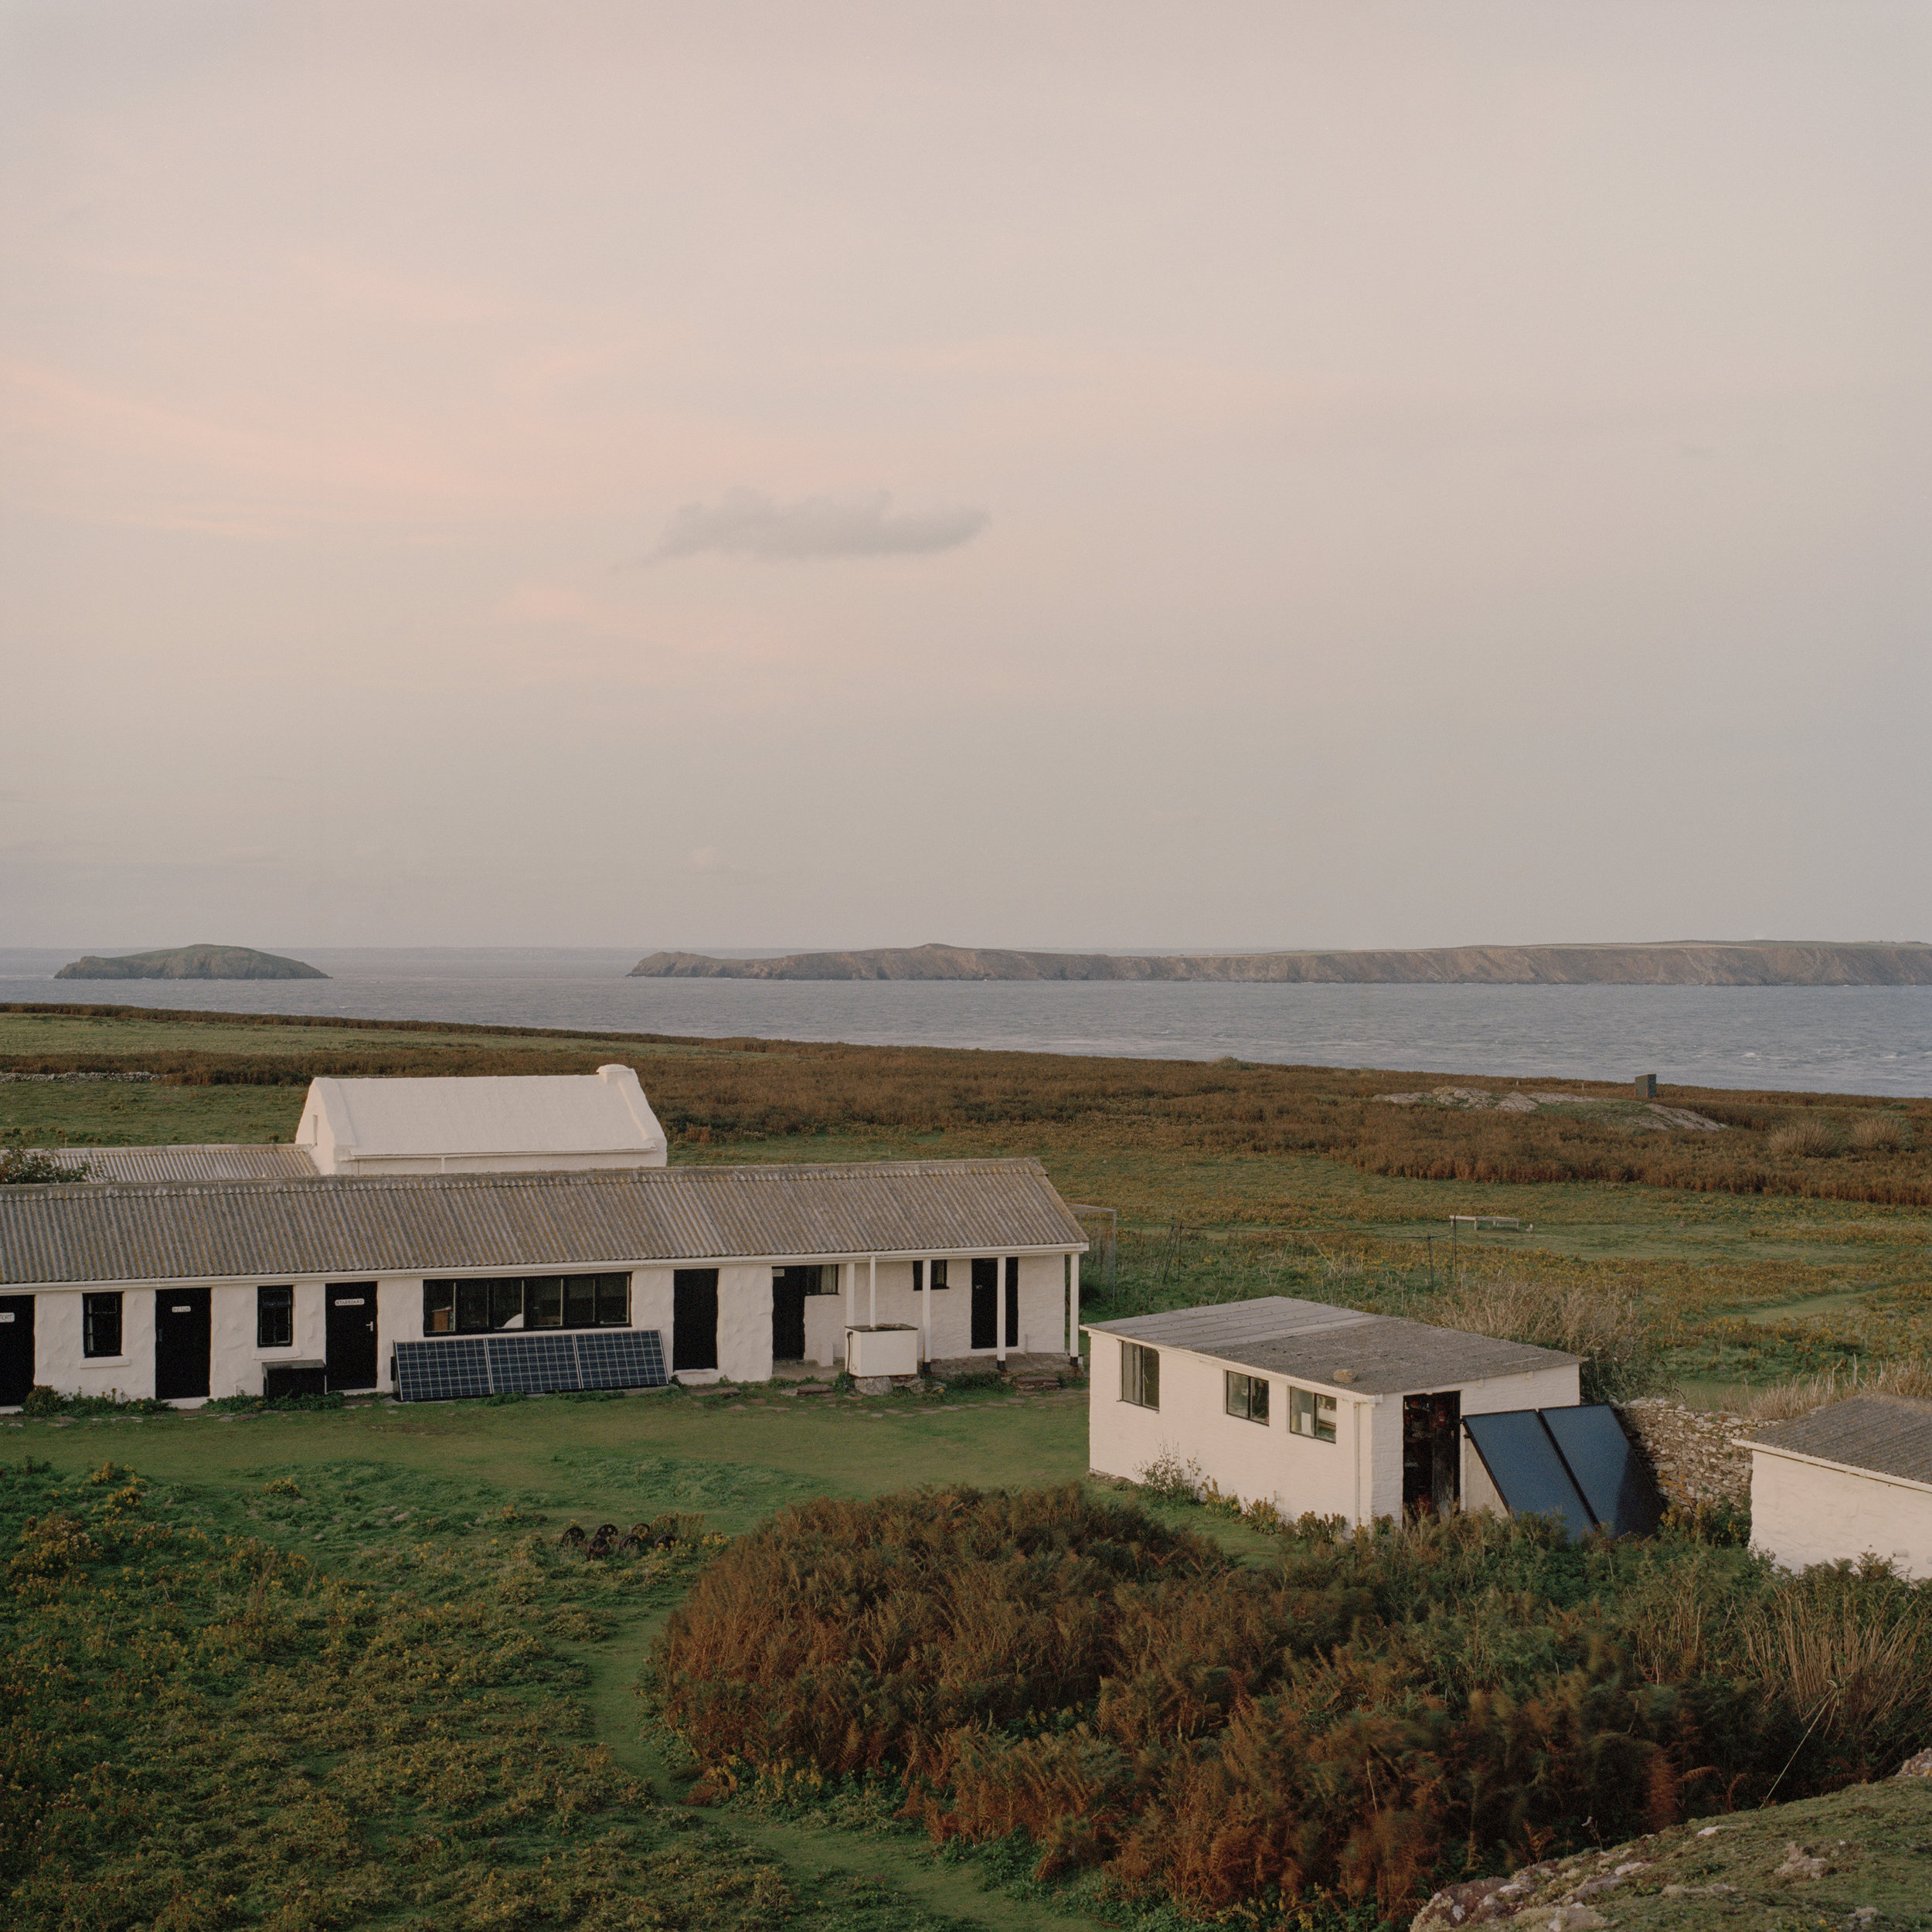 Research Labs, Skokholm Island